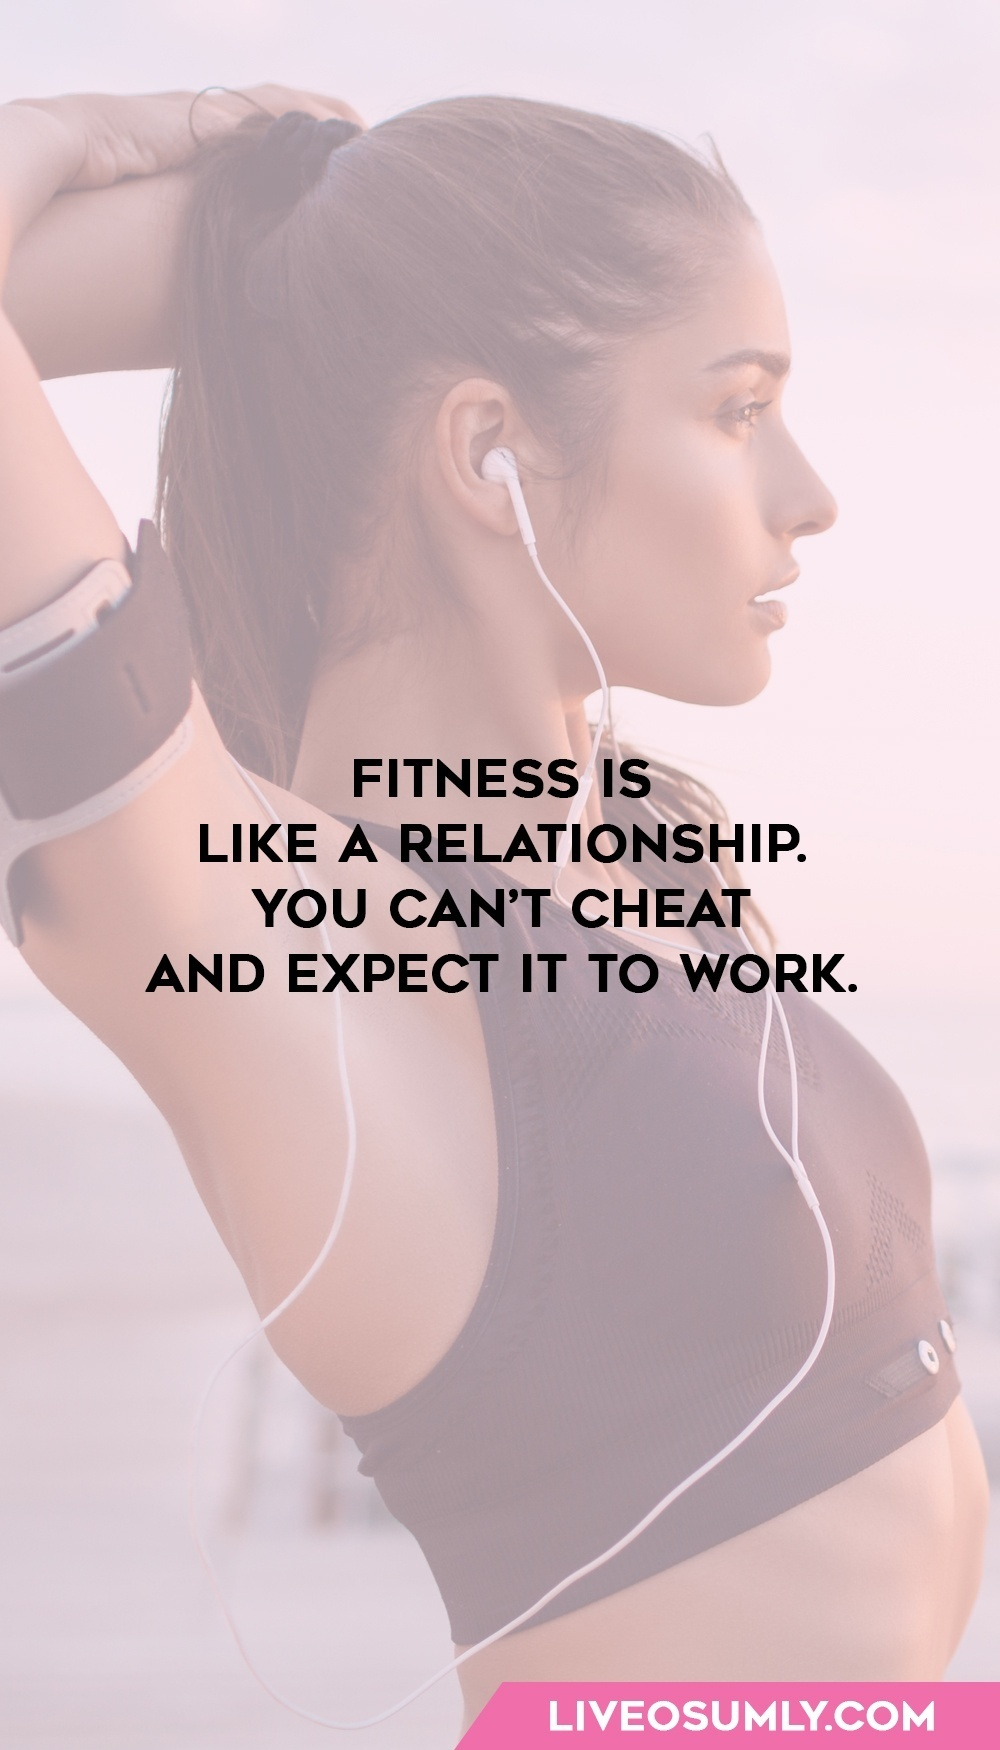 3. Best Fitness Quotes